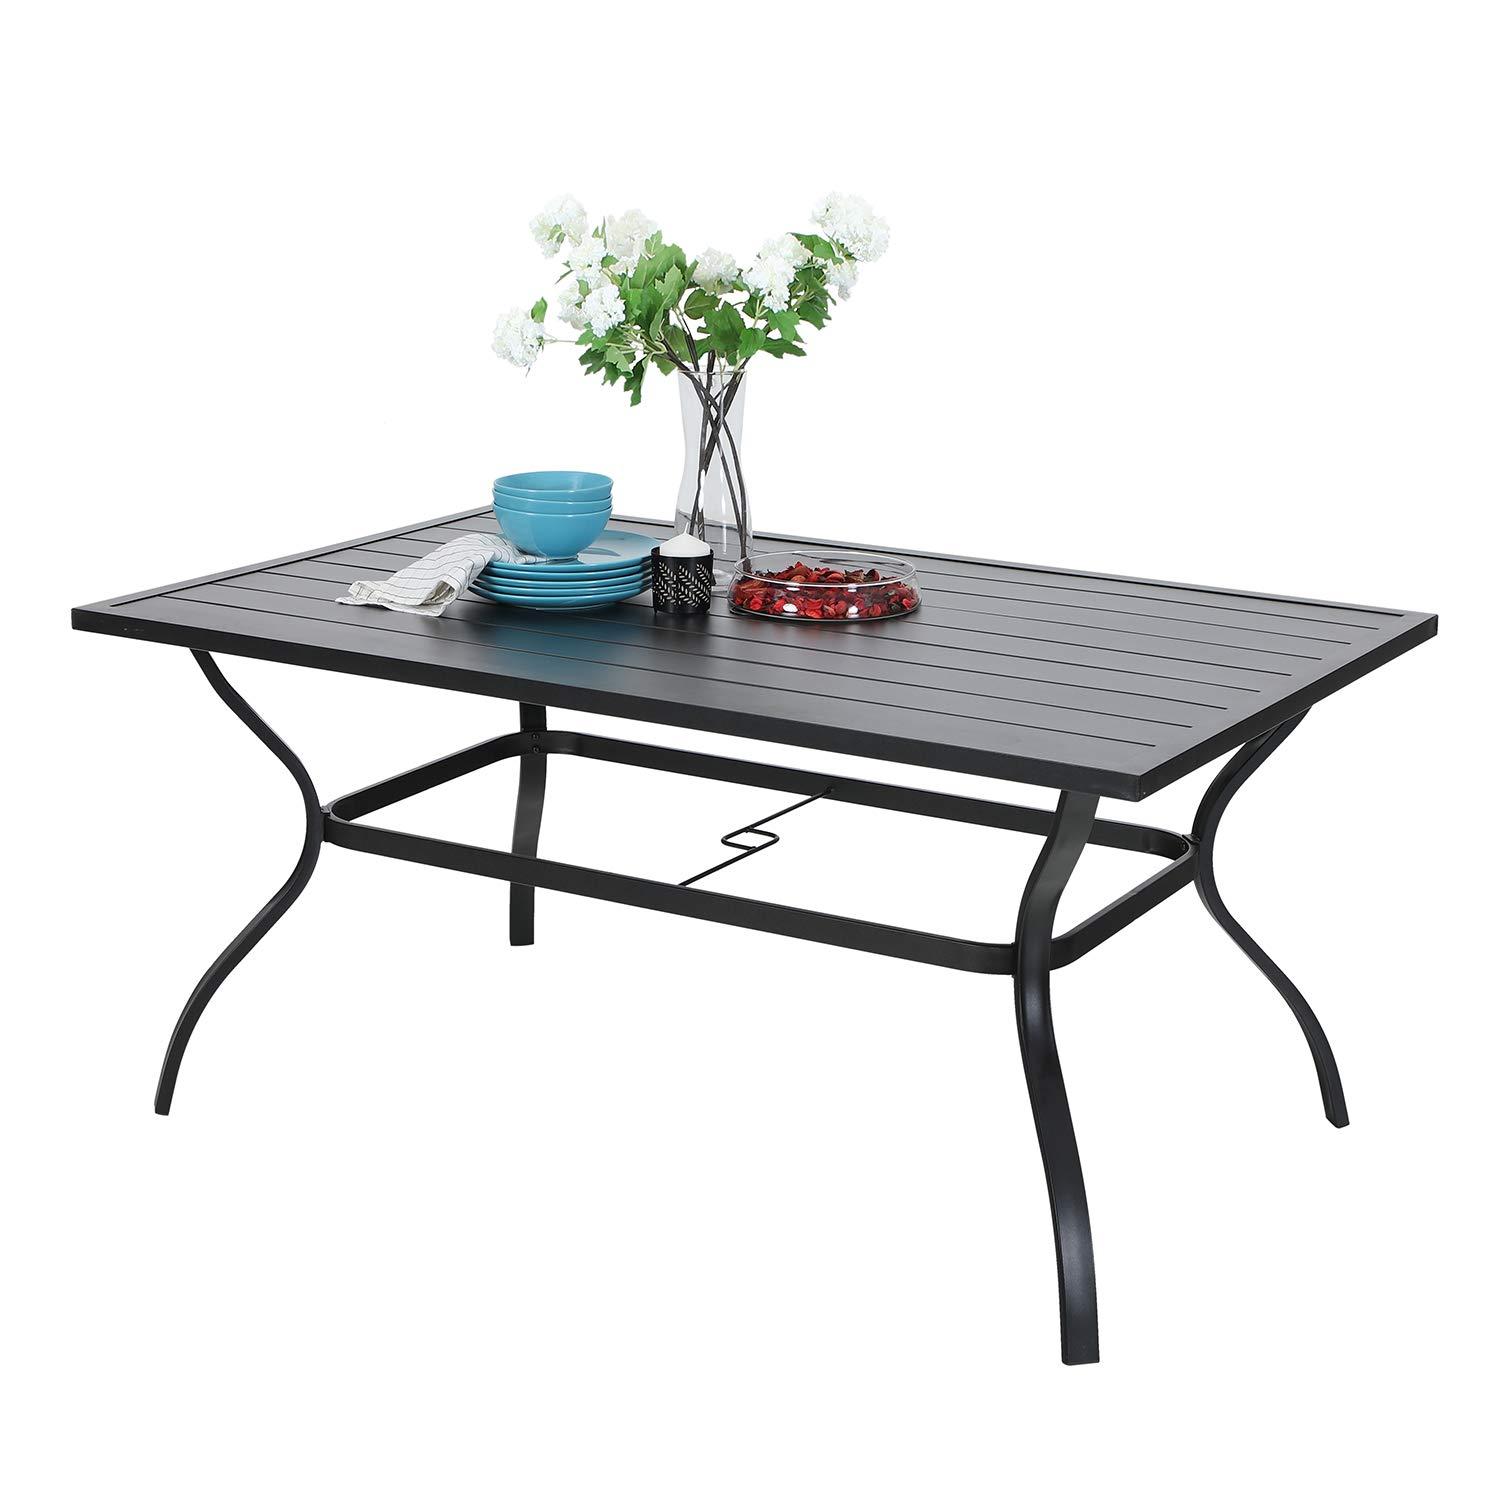 MF Outdoor Metal Dining Table Garden 6 Person Umbrella Table for Lawn Patio Pool Sturdy Steel Frame Weather-Resistant Coffee Bistro Table Black (1 Table)